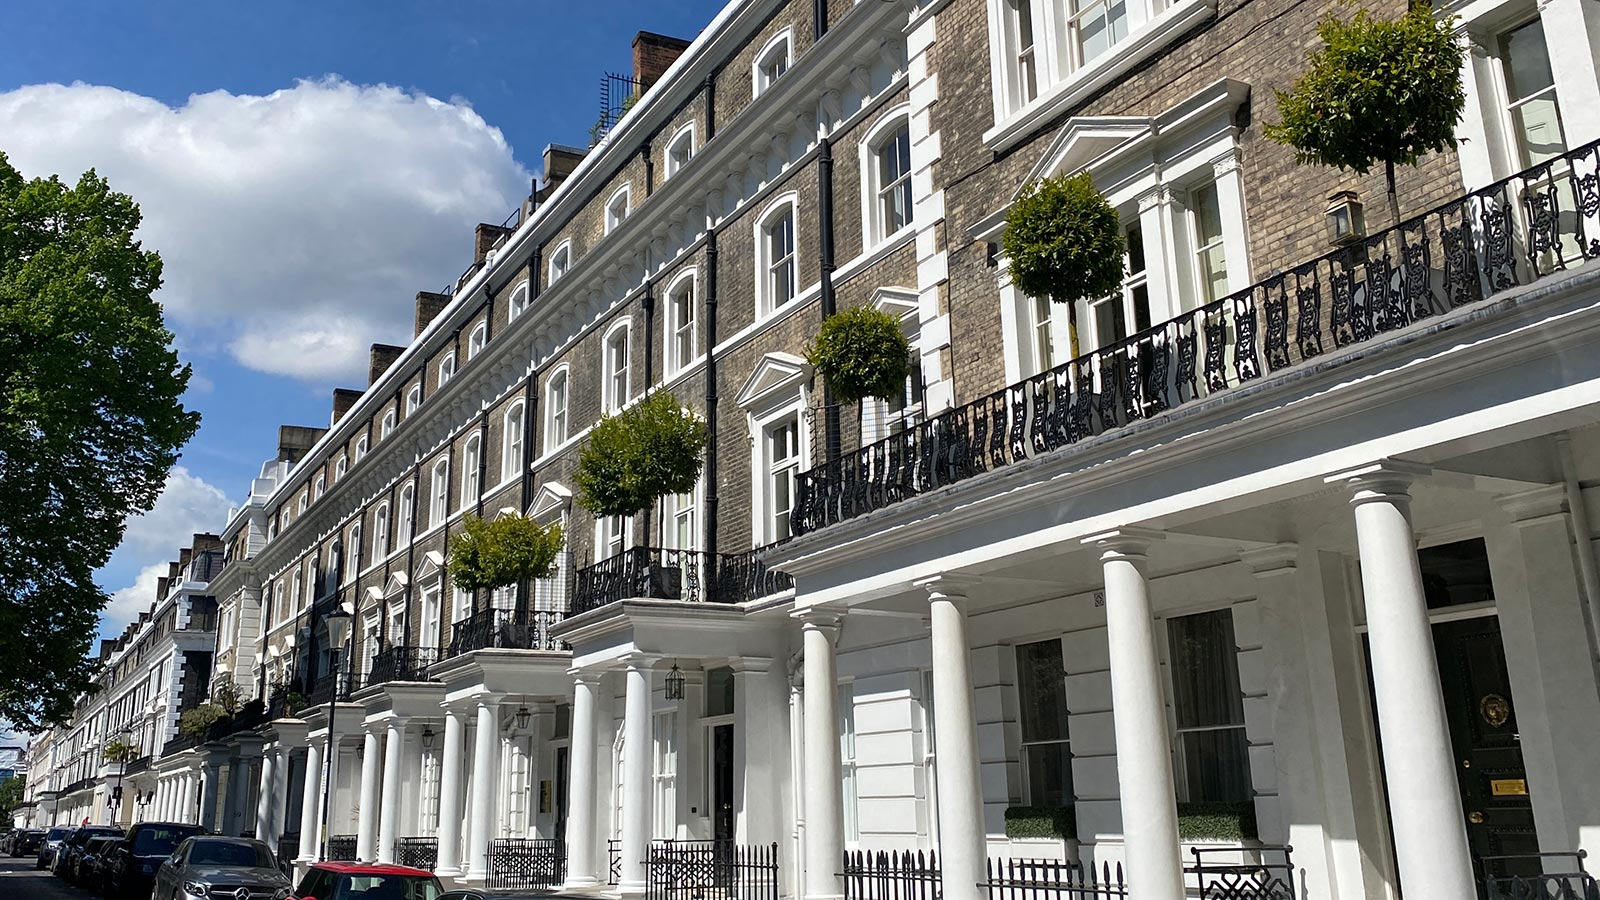 A popular square for The Buying Agents South Kensington